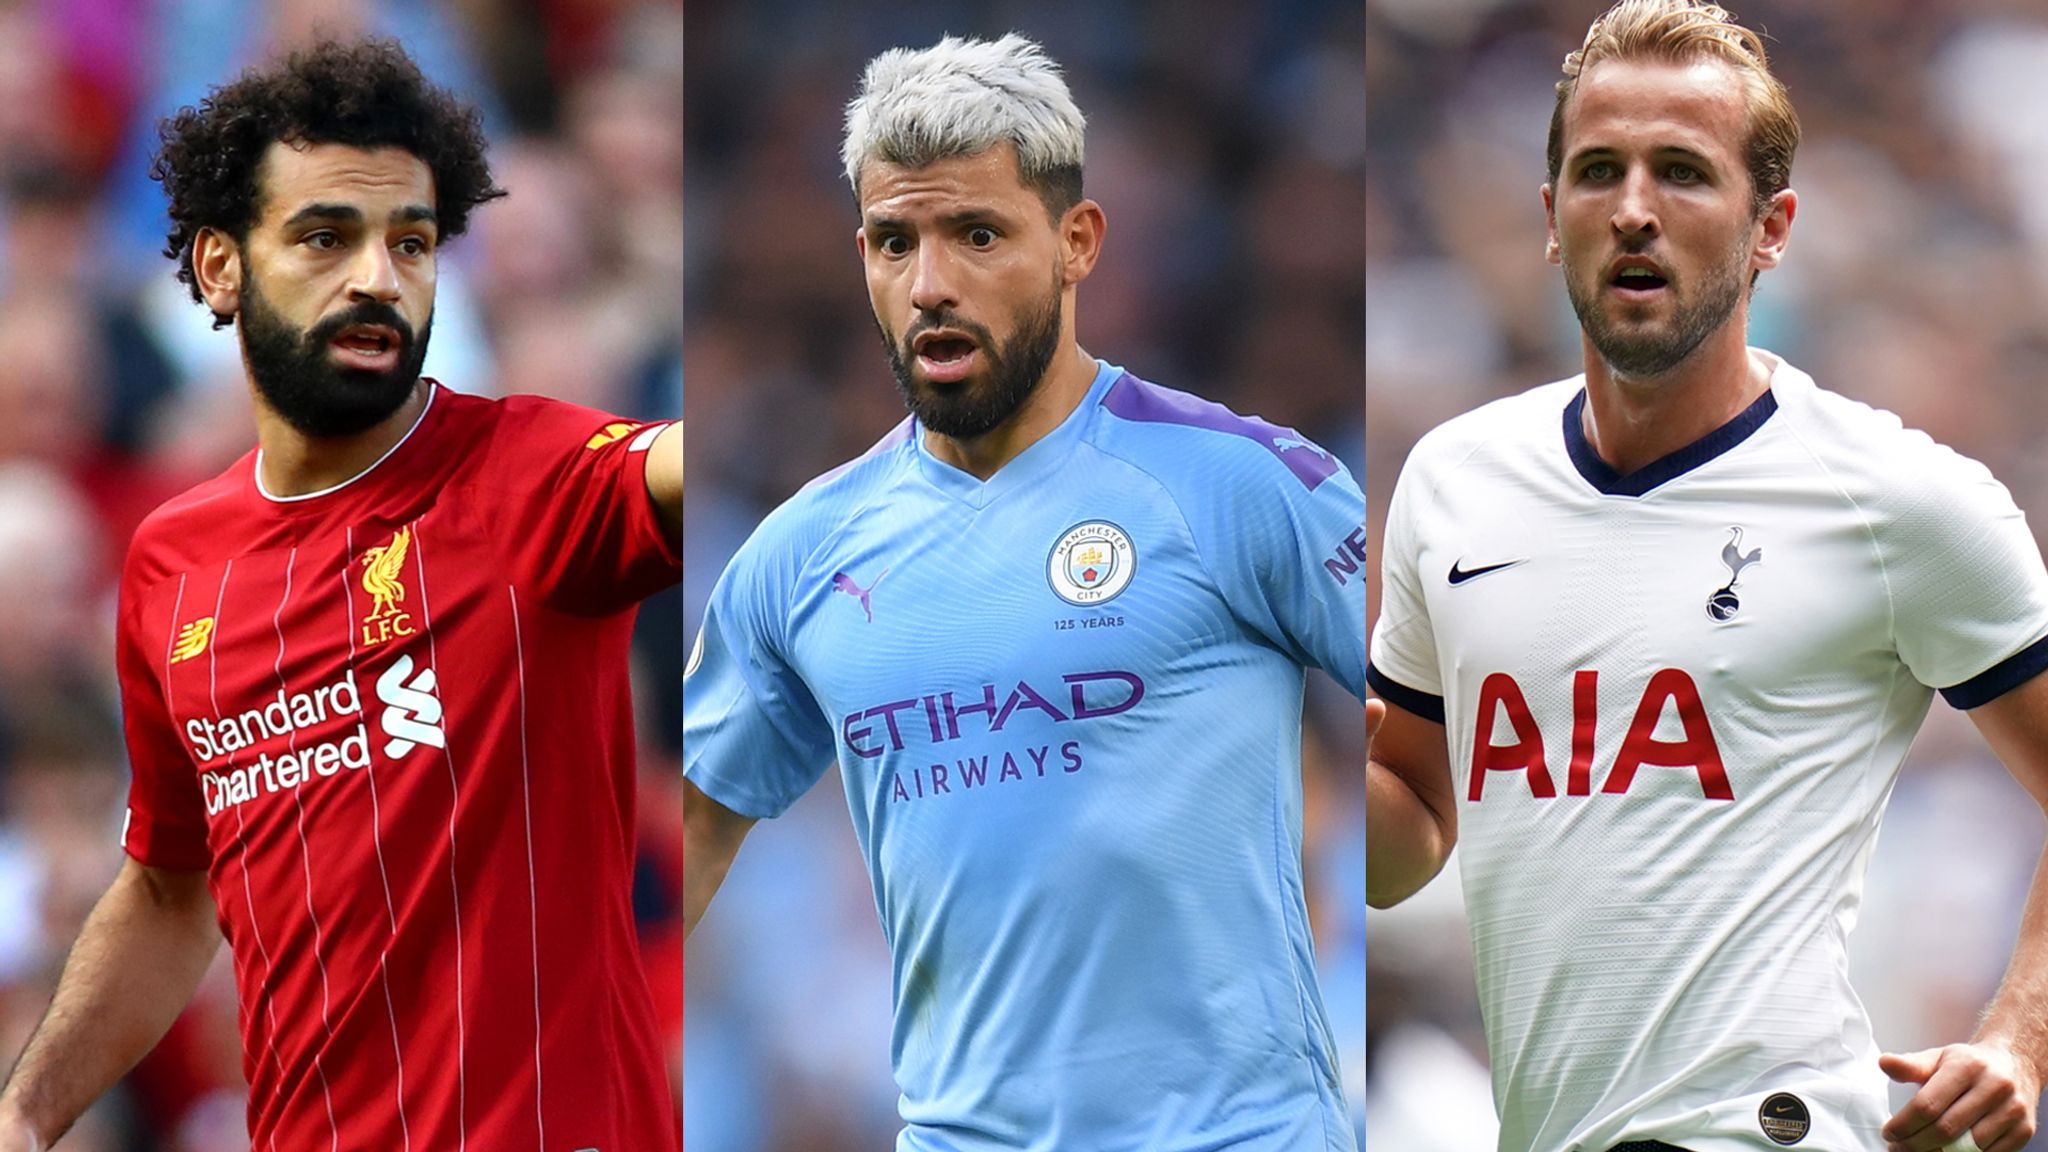 Full Premier League squads confirmed for 2019/20 season